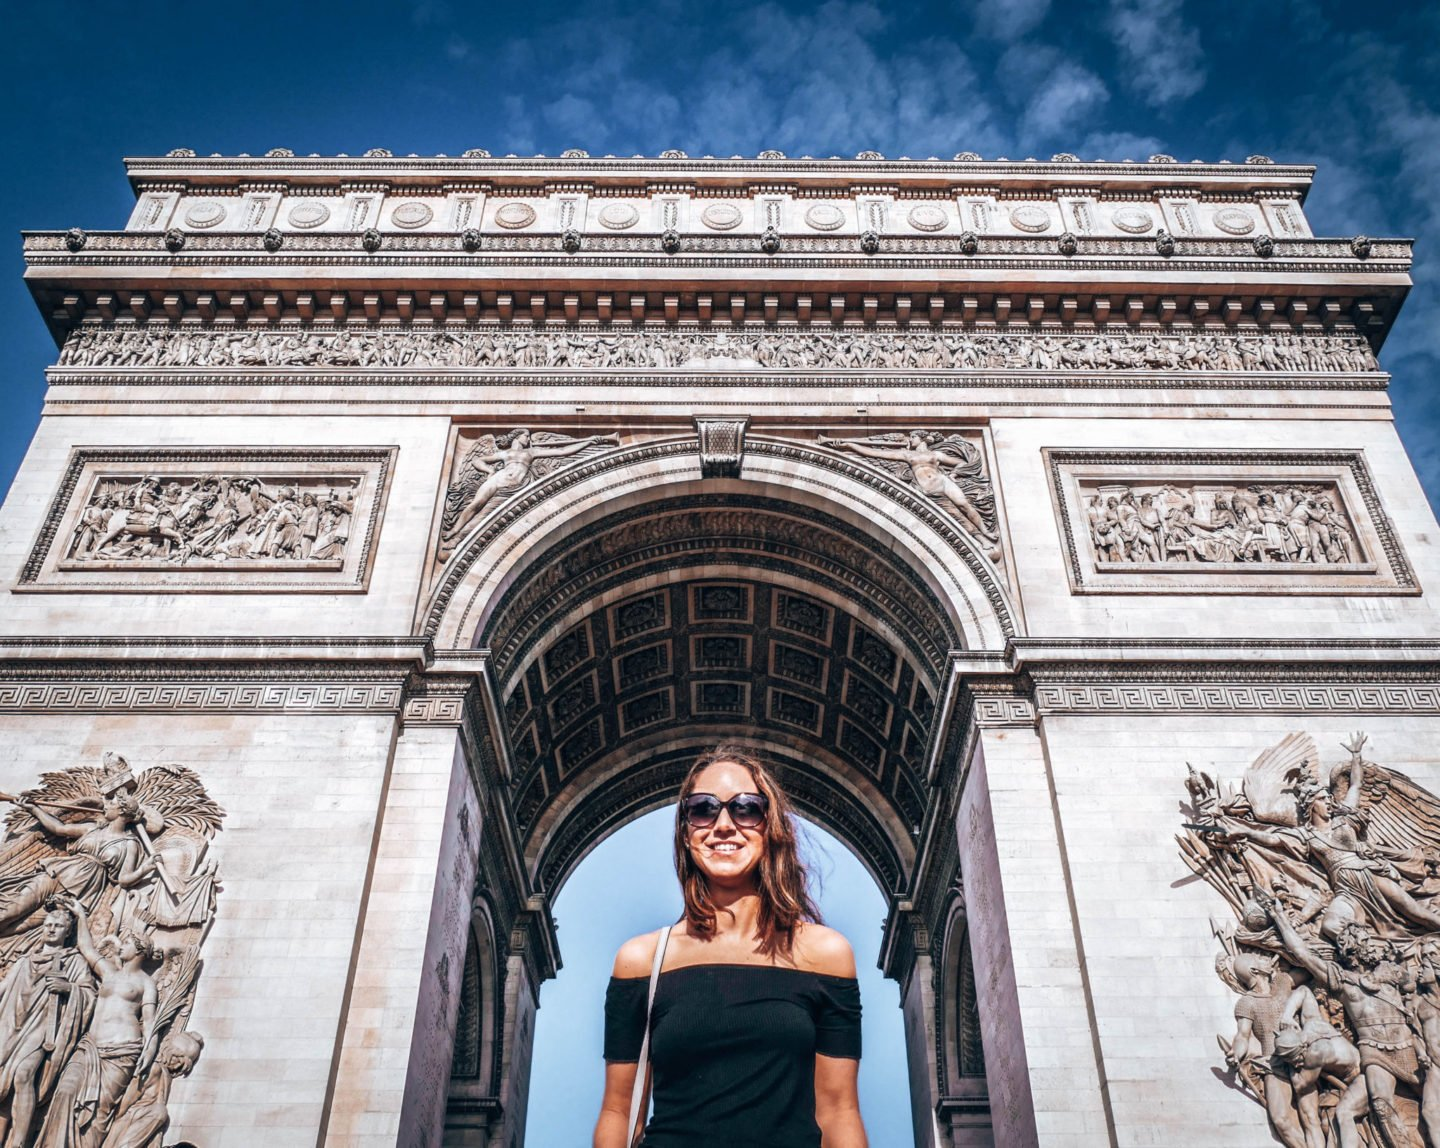 2 days in Paris - the Arc de Triomphe